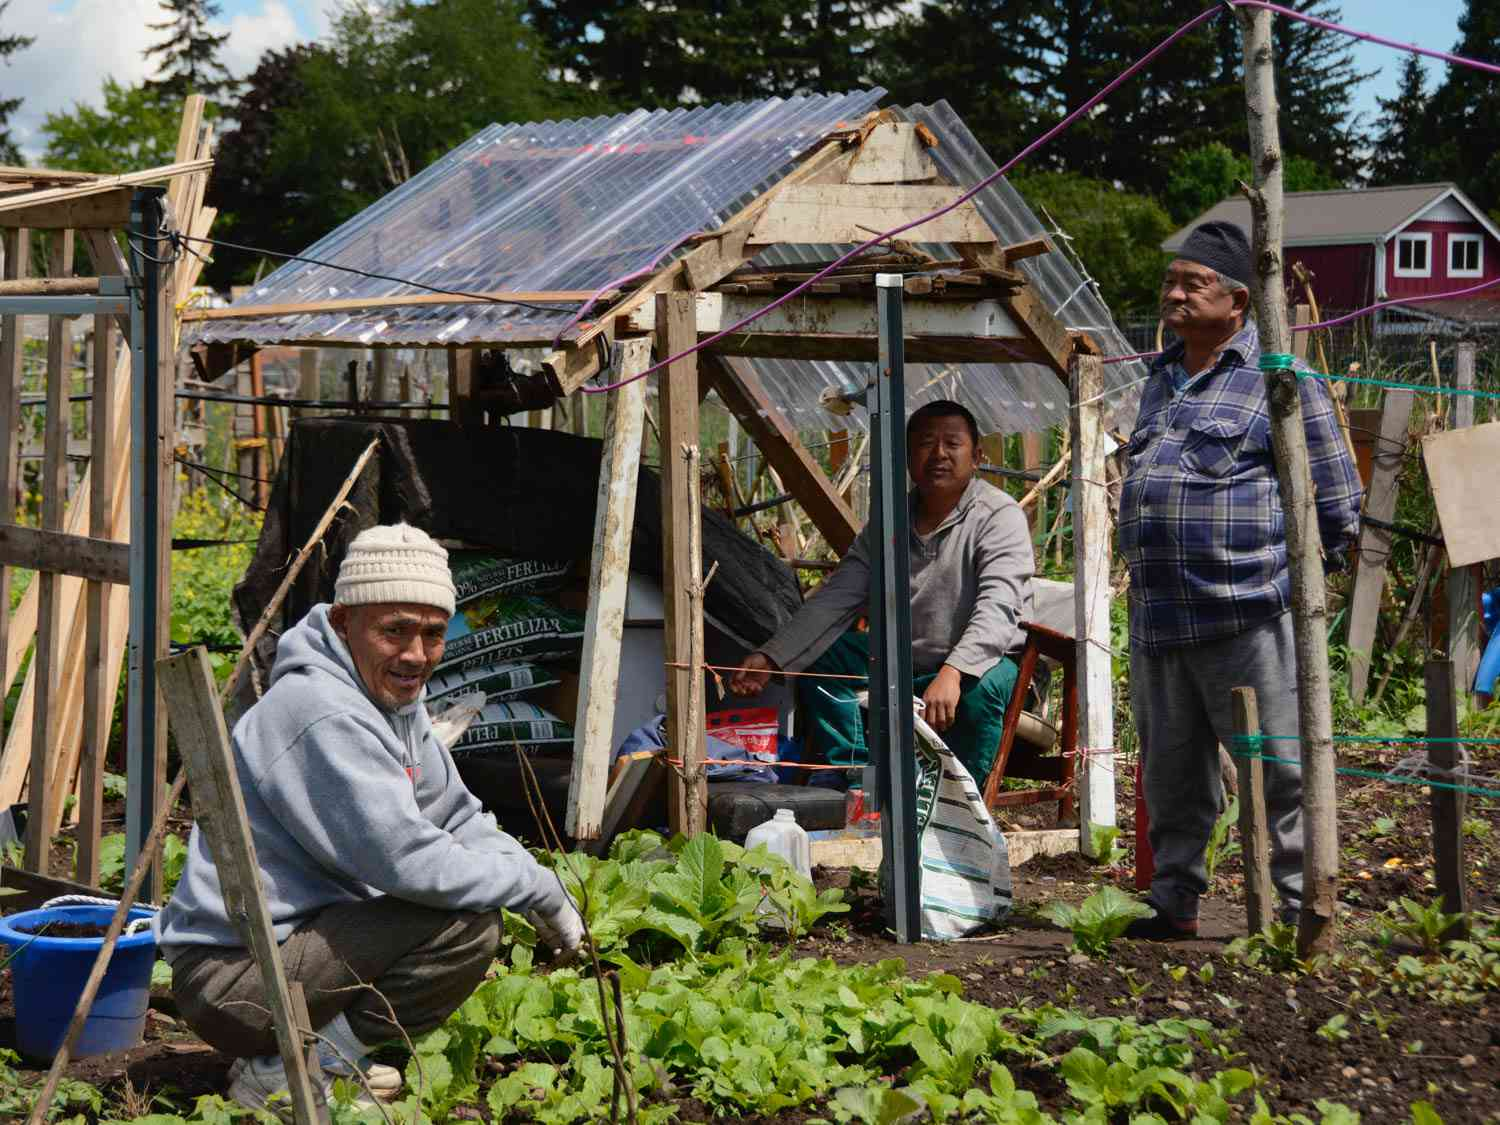 Gardeners gathering in and around a lean-to in their community garden in Portland, Oregon.